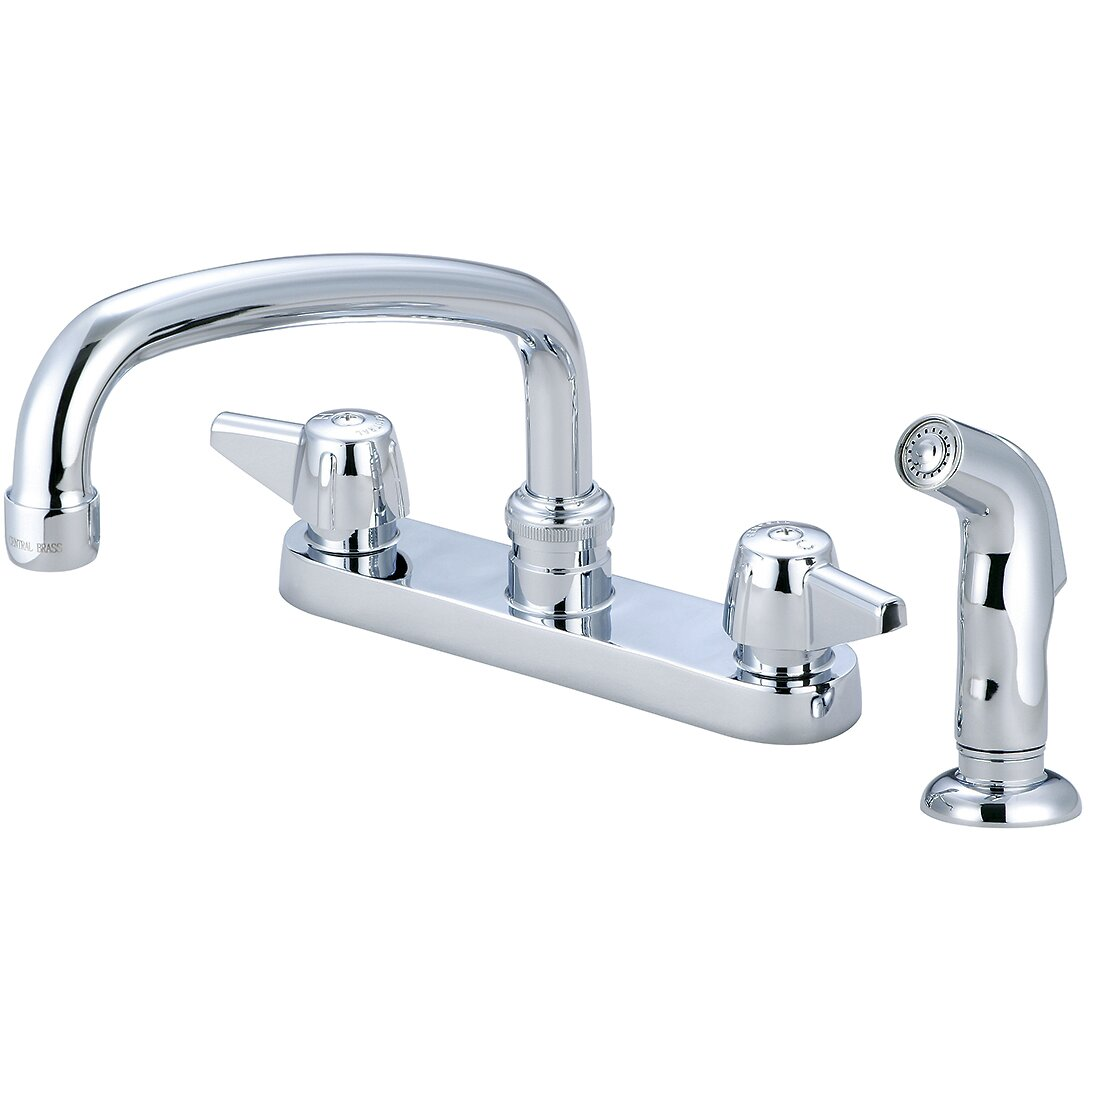 Central Brass Double Handle Centerset Kitchen Faucet with